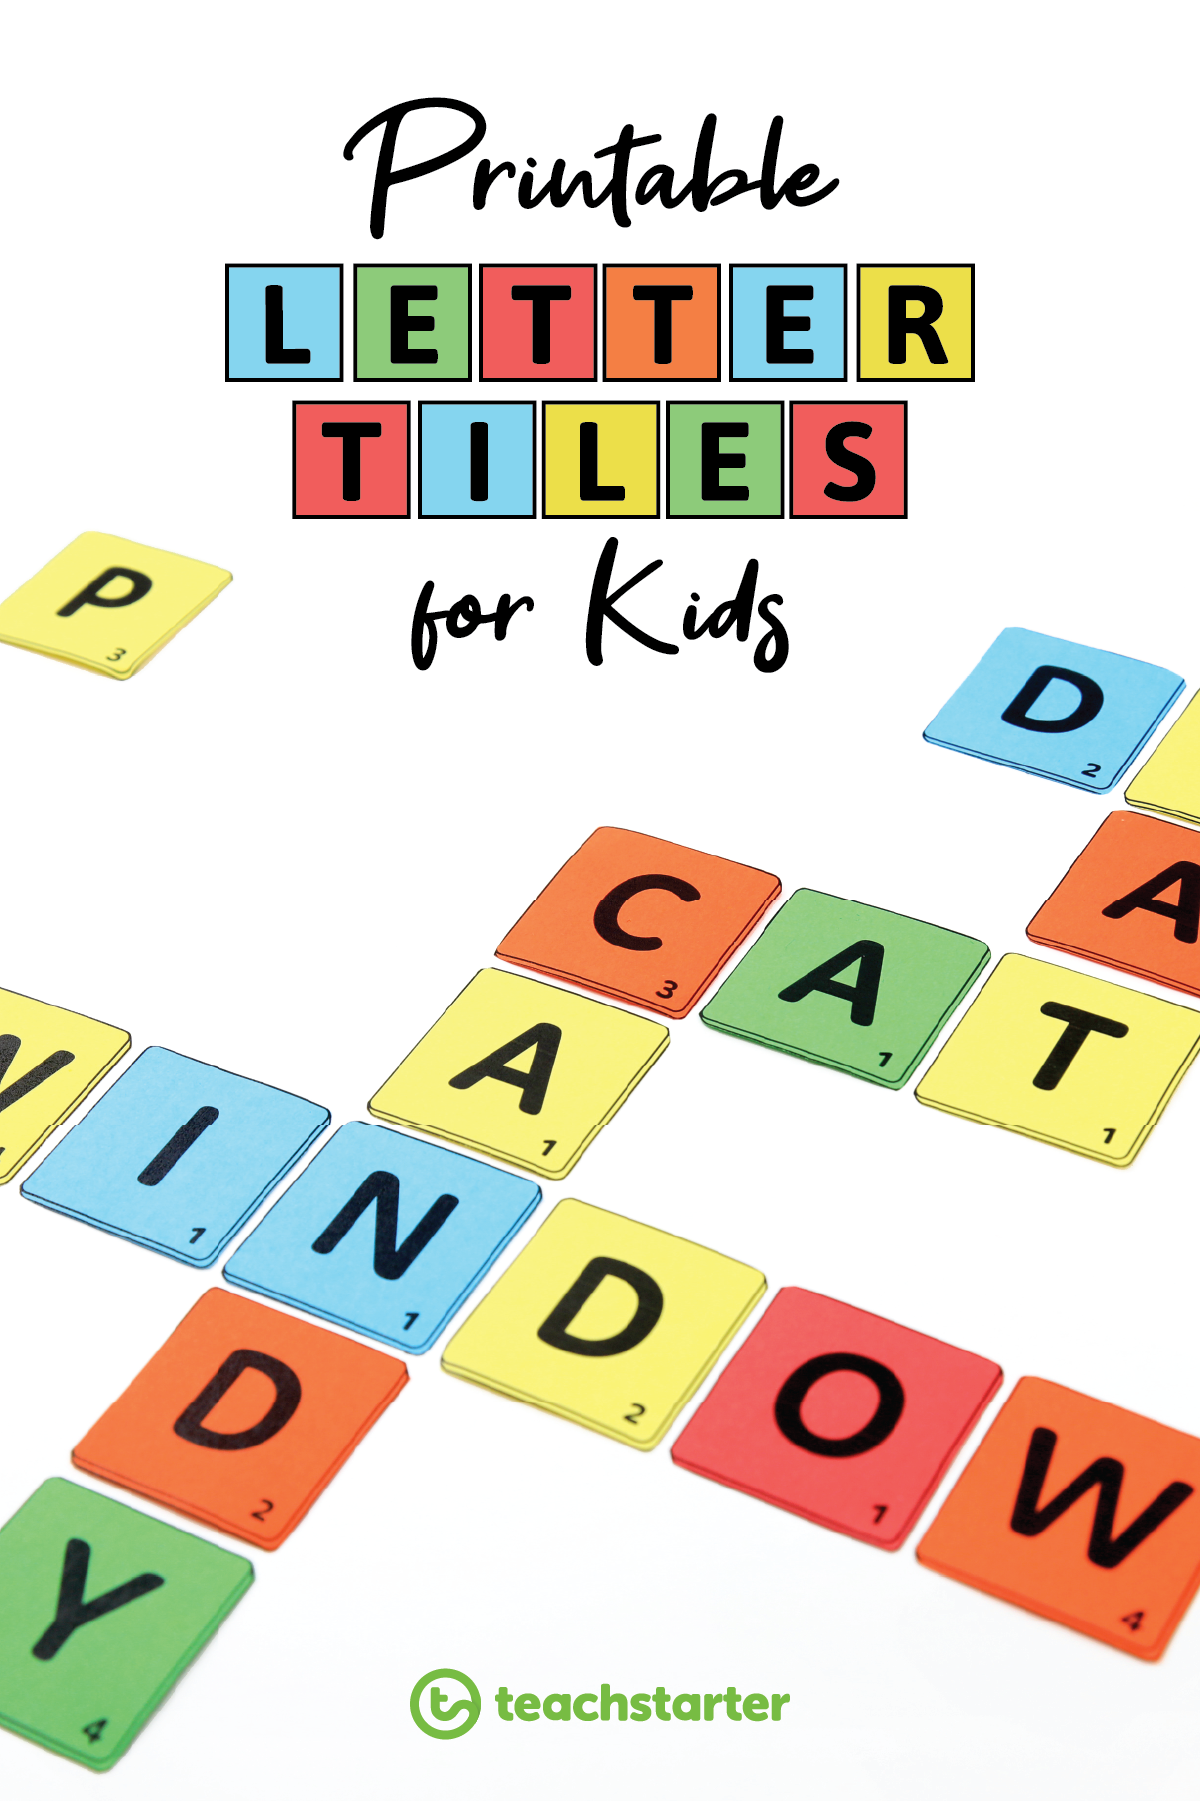 5 Fun Ways To Use Letter Tiles In The Classroom With Free